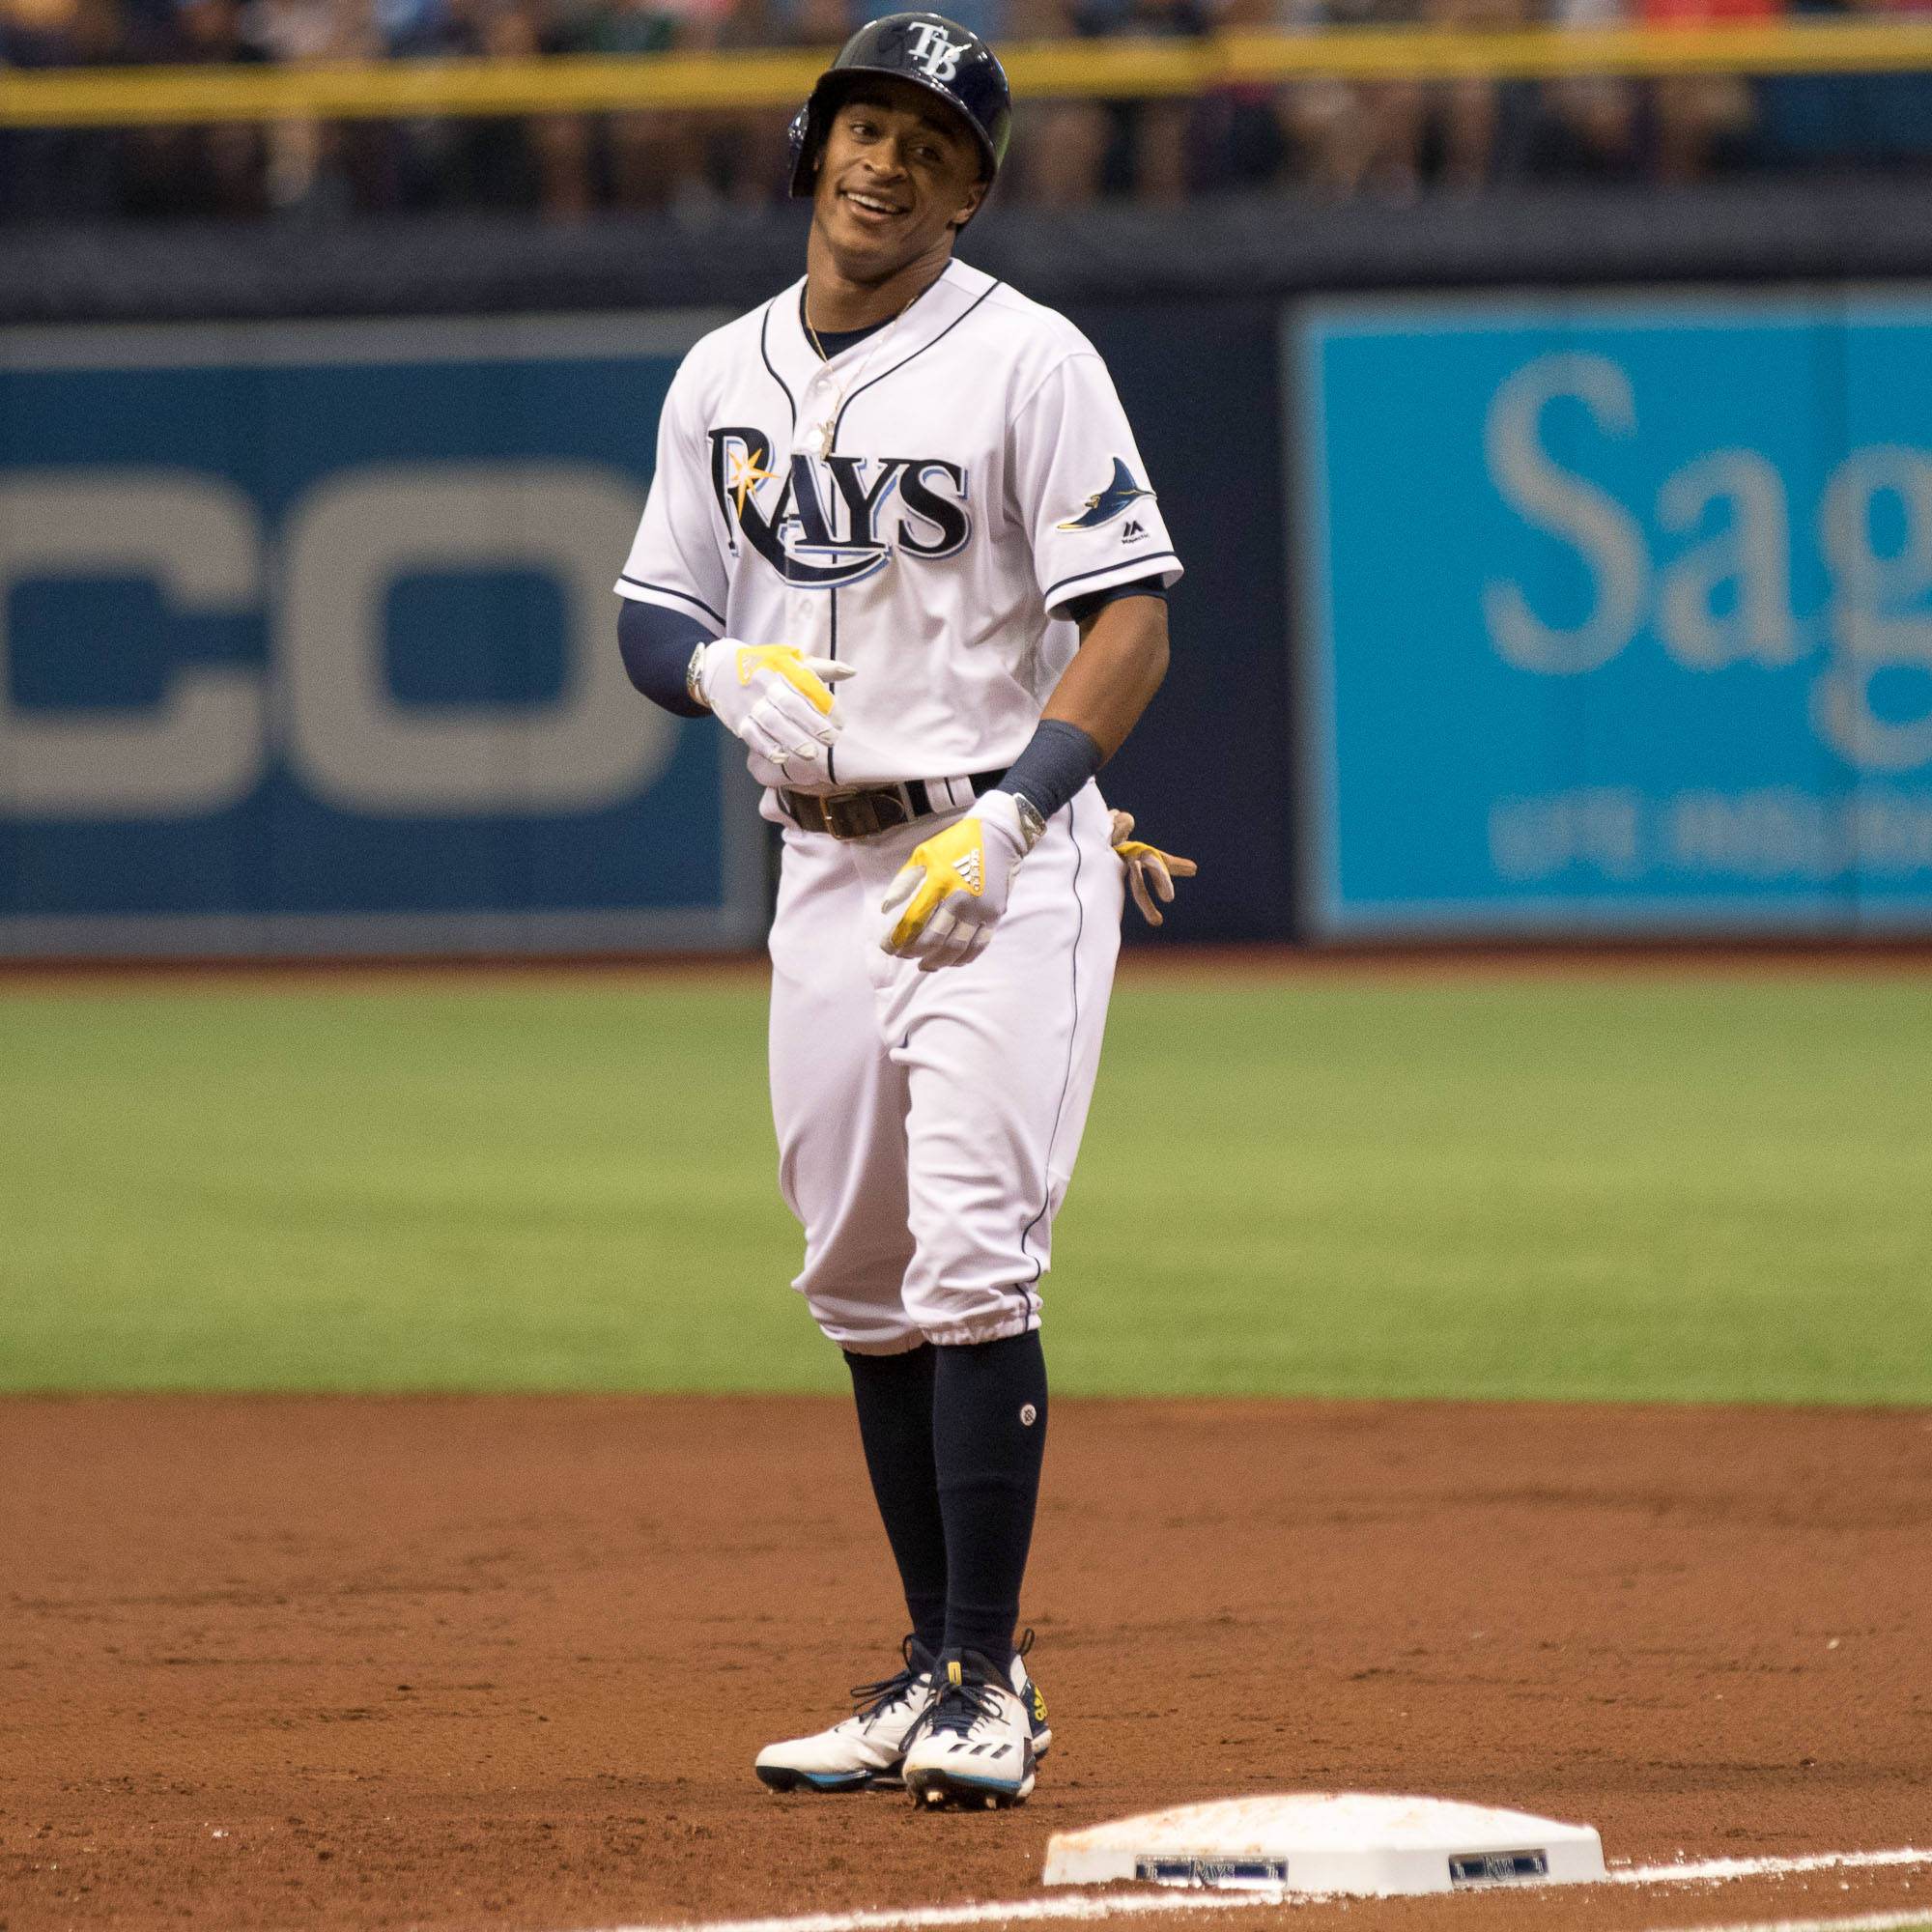 Mallex Smith had two hits and extended his hitting streak./STEVEN MUNCIE